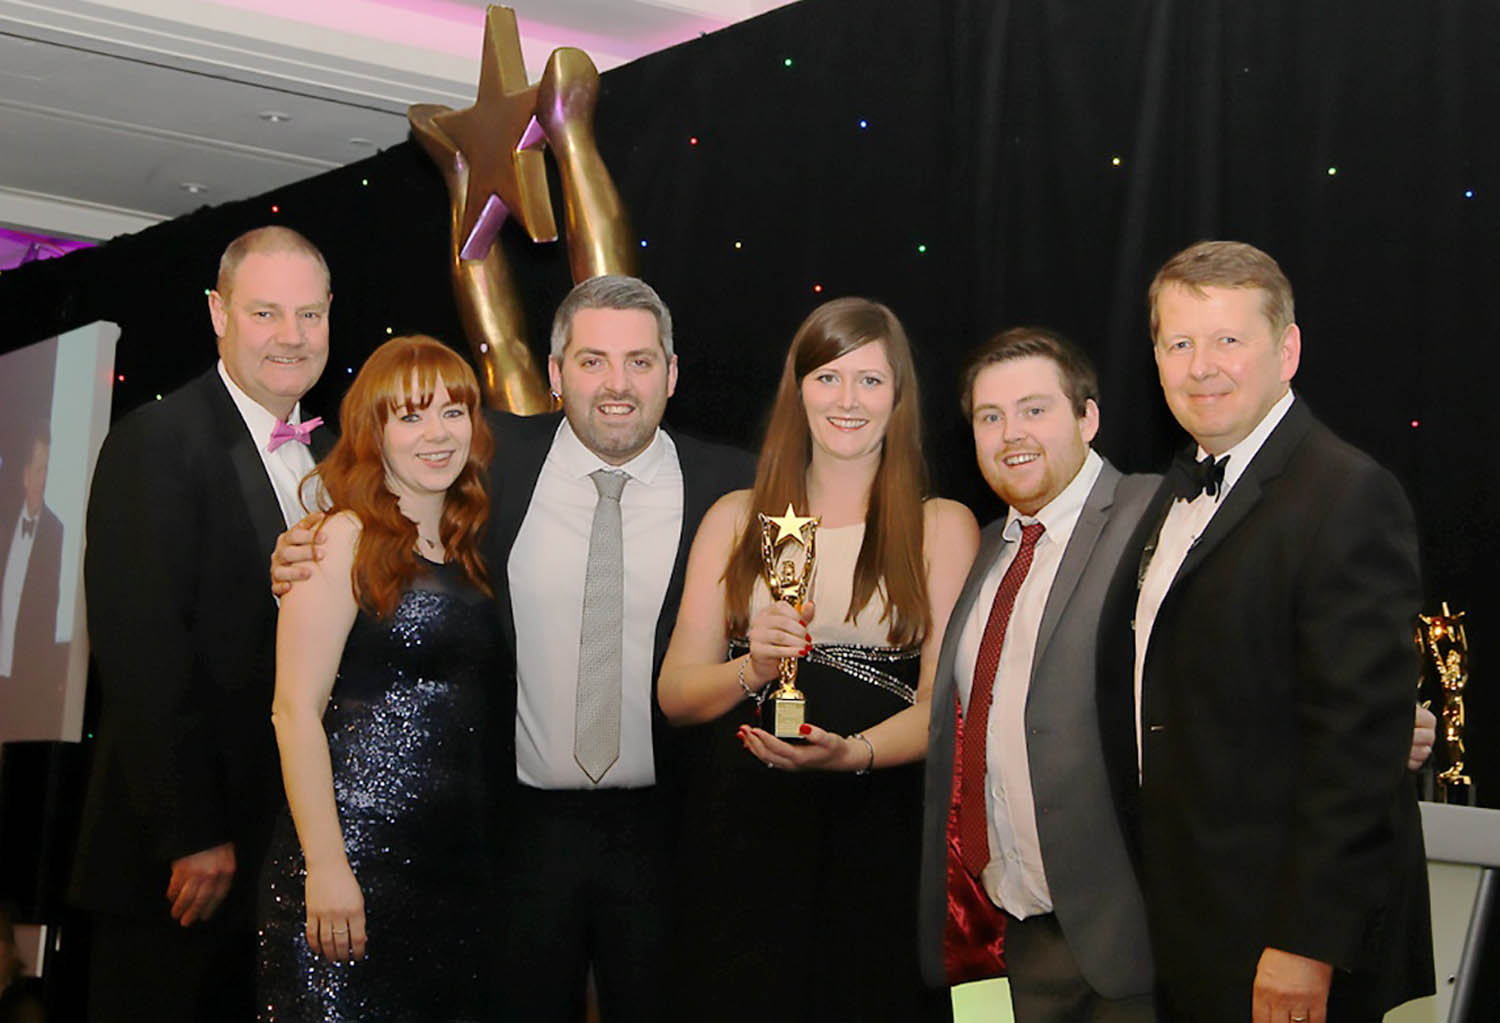 The team from Boxed Red in Knutsford collecting the award from BBC Breakfast host Bill Turnbull, far right.